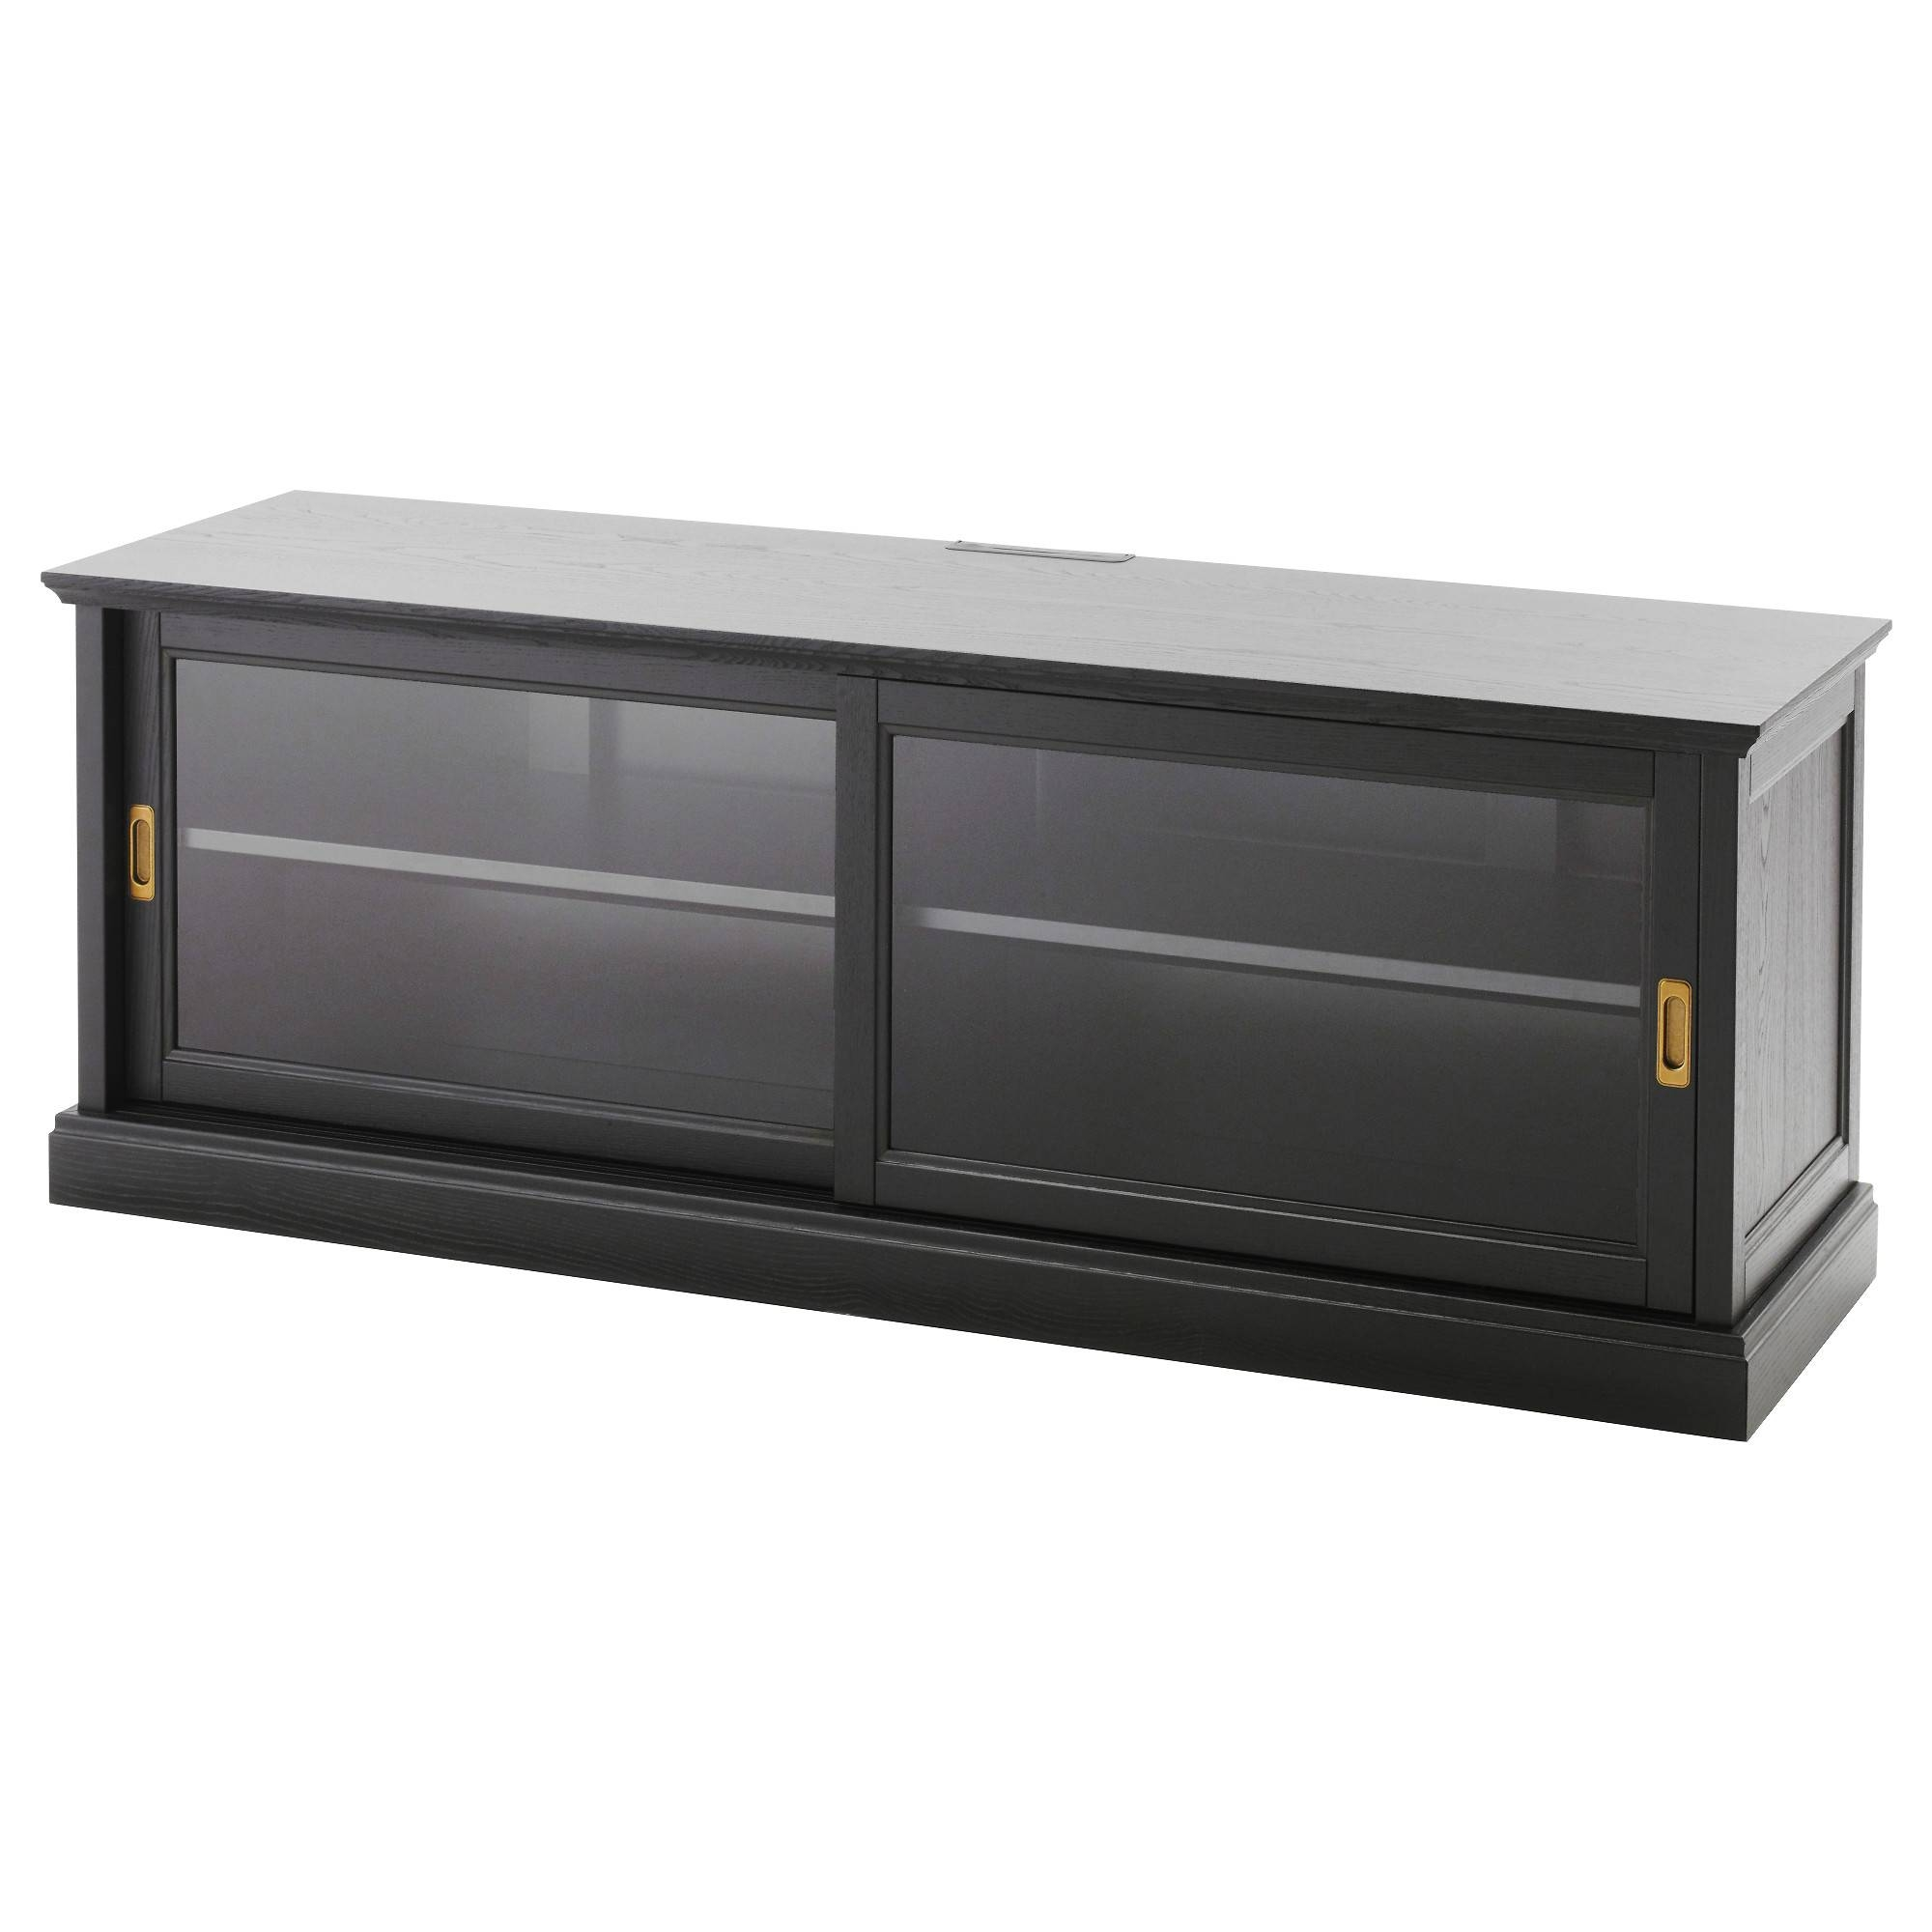 Tv Media Furniture – Tv Stands, Cabinets & Media Storage – Ikea For Glass Fronted Tv Cabinet (View 13 of 15)